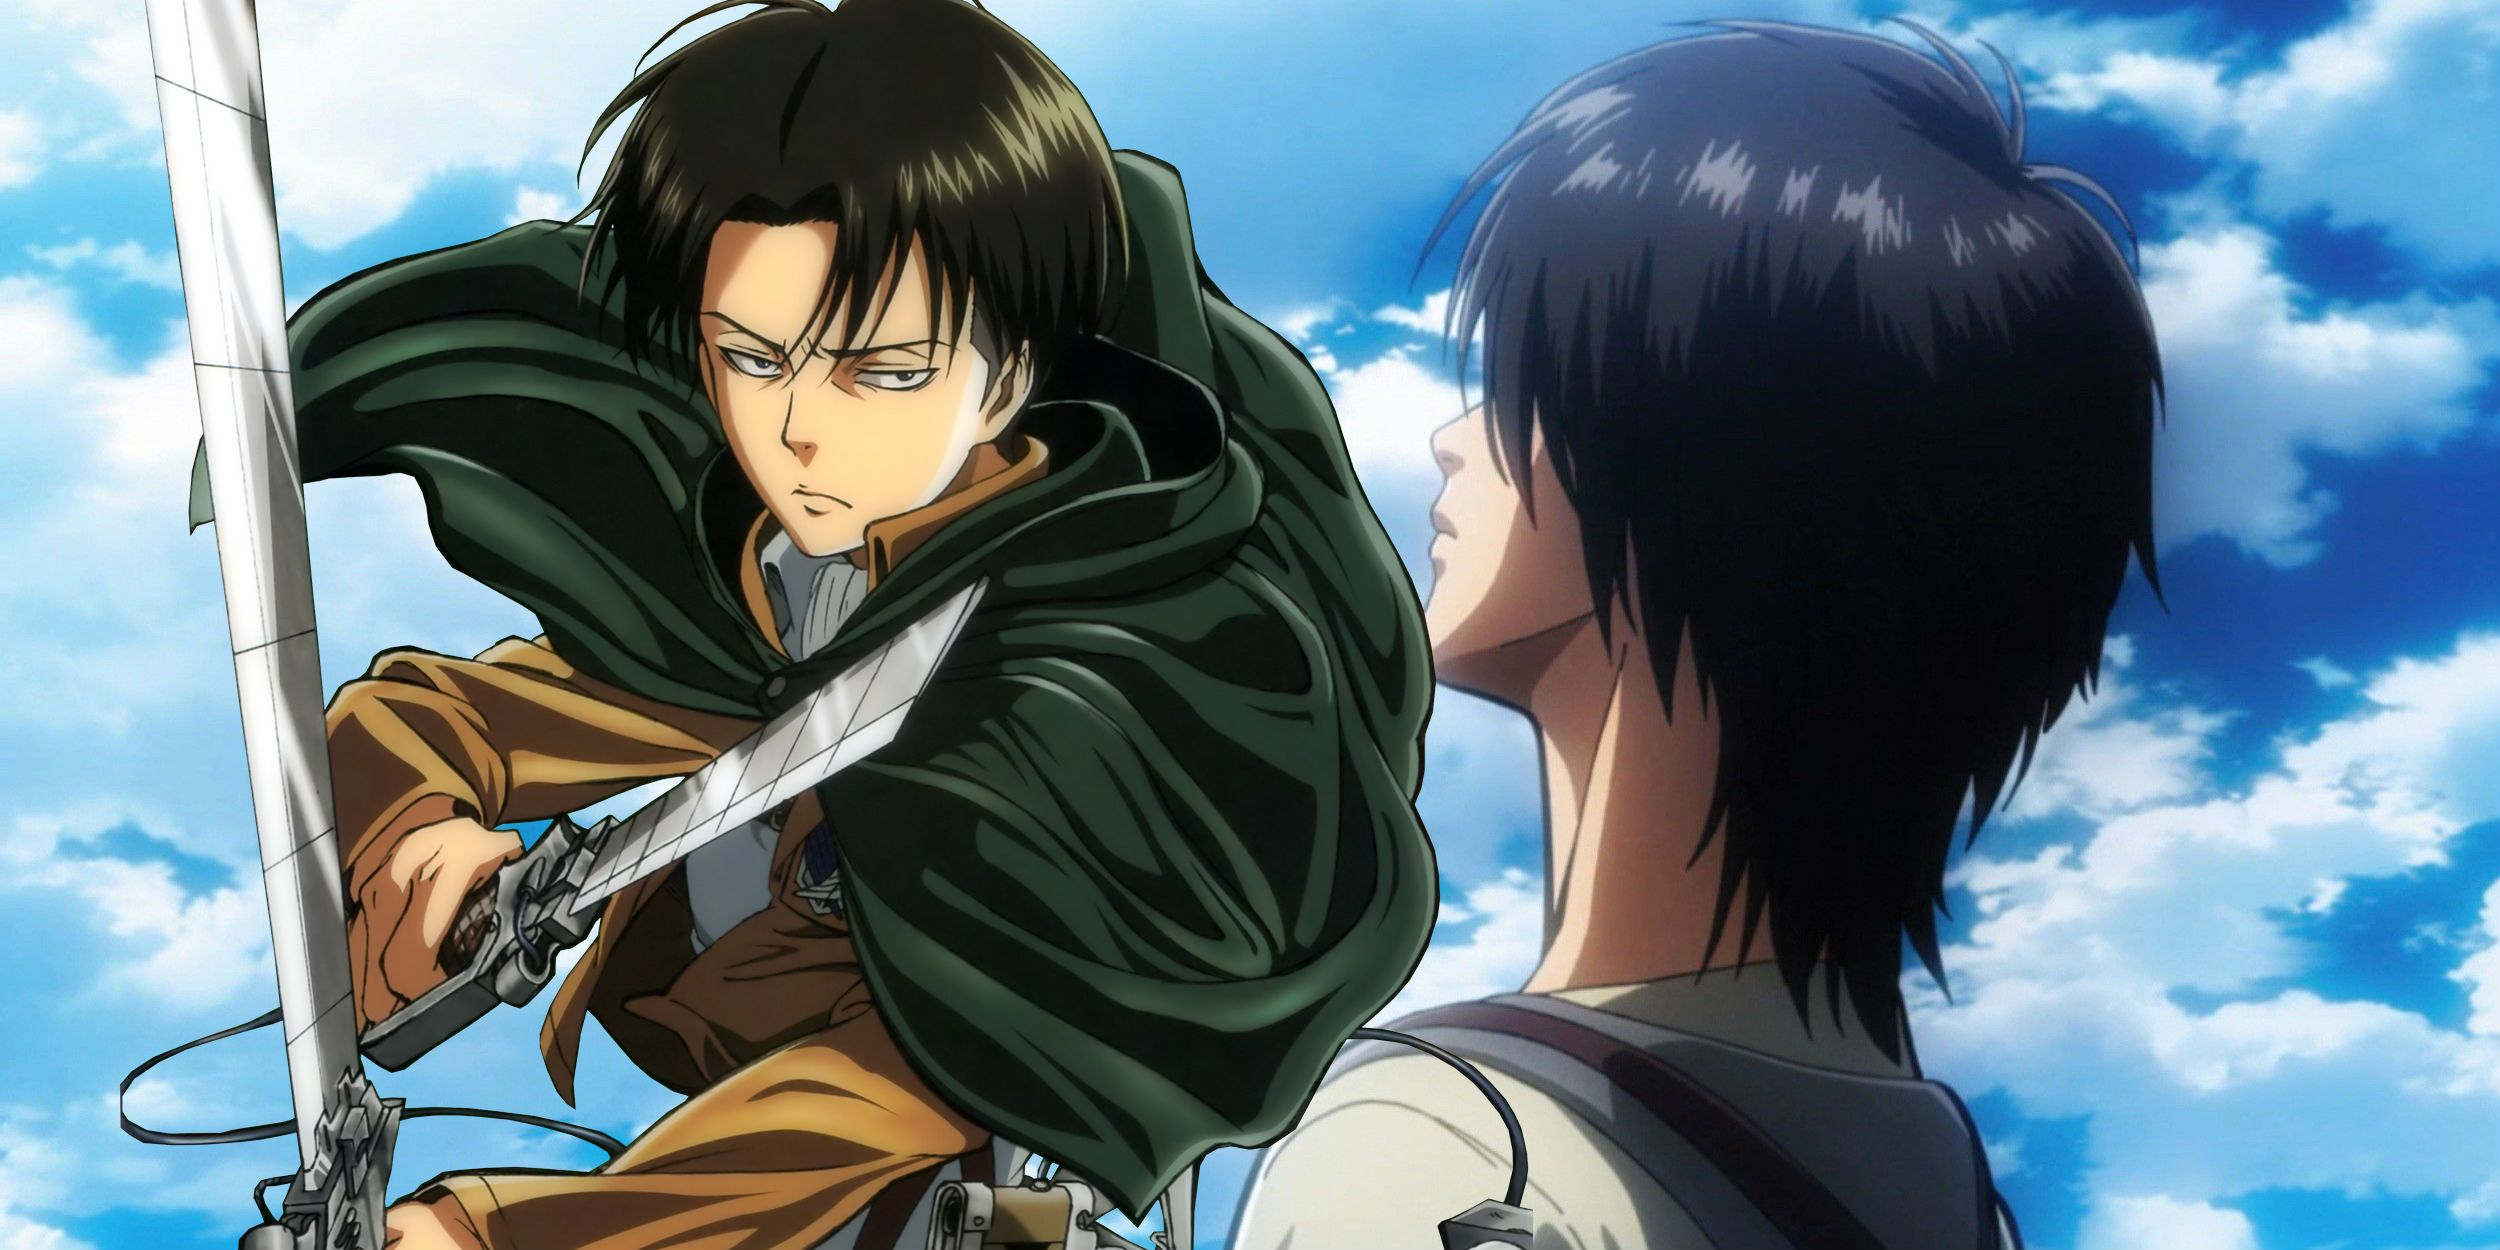 Attack on Titan Chapter 131 Spoilers Theories and Predictions